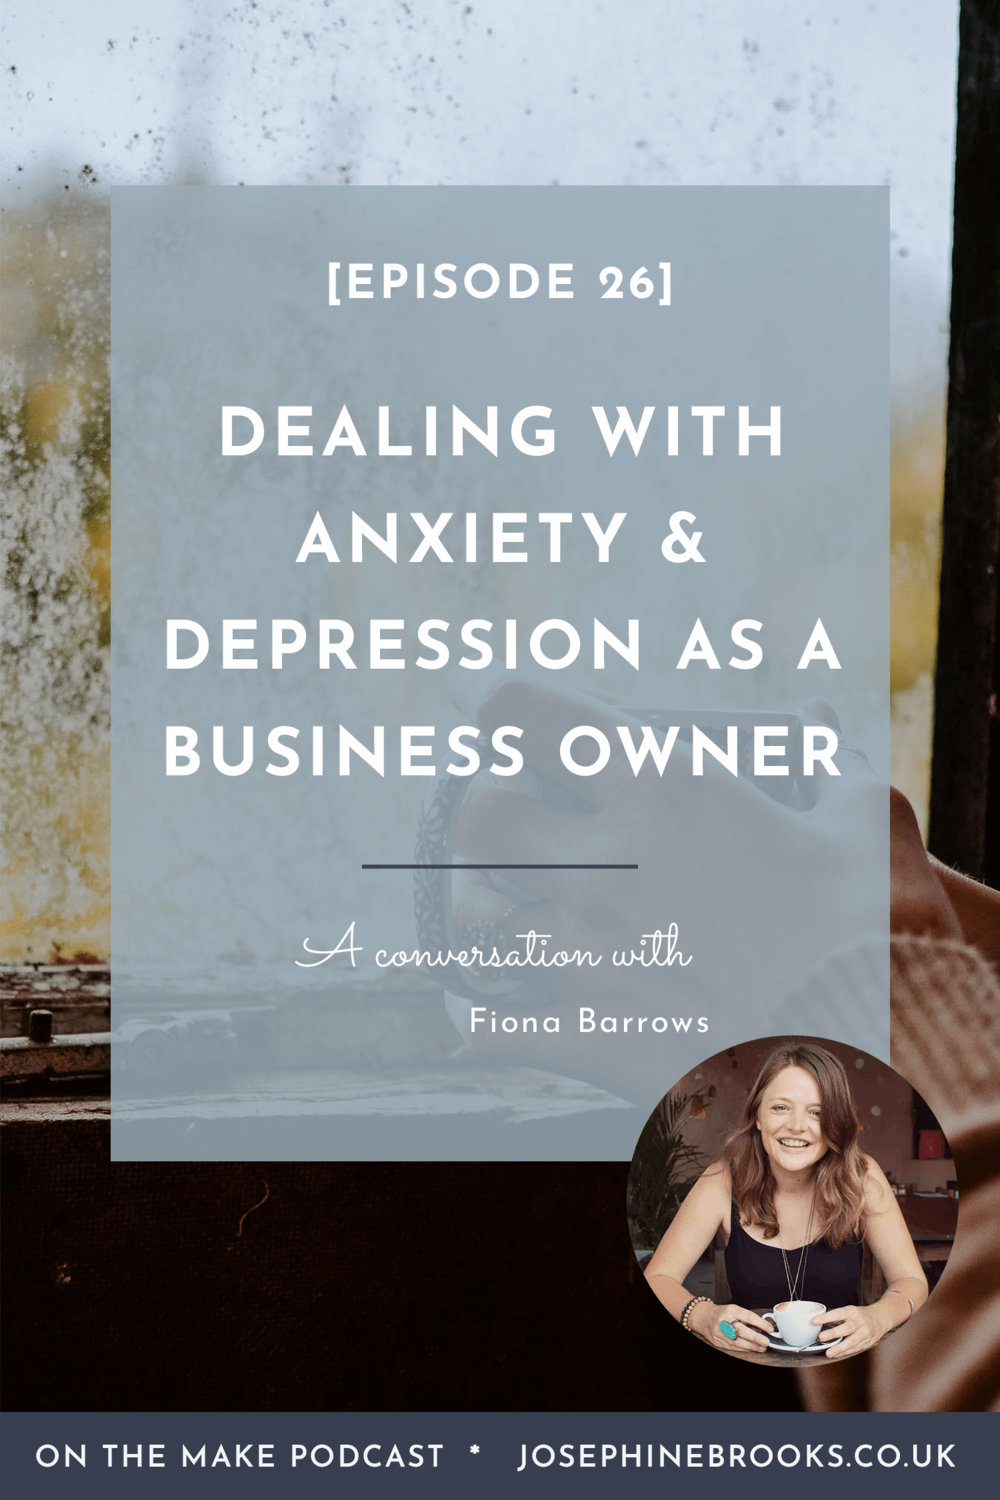 A conversation about managing anxiety and depression as a business owner - Episode 26 of On The Make podcast with Josephine Brooks and Fiona Barrows